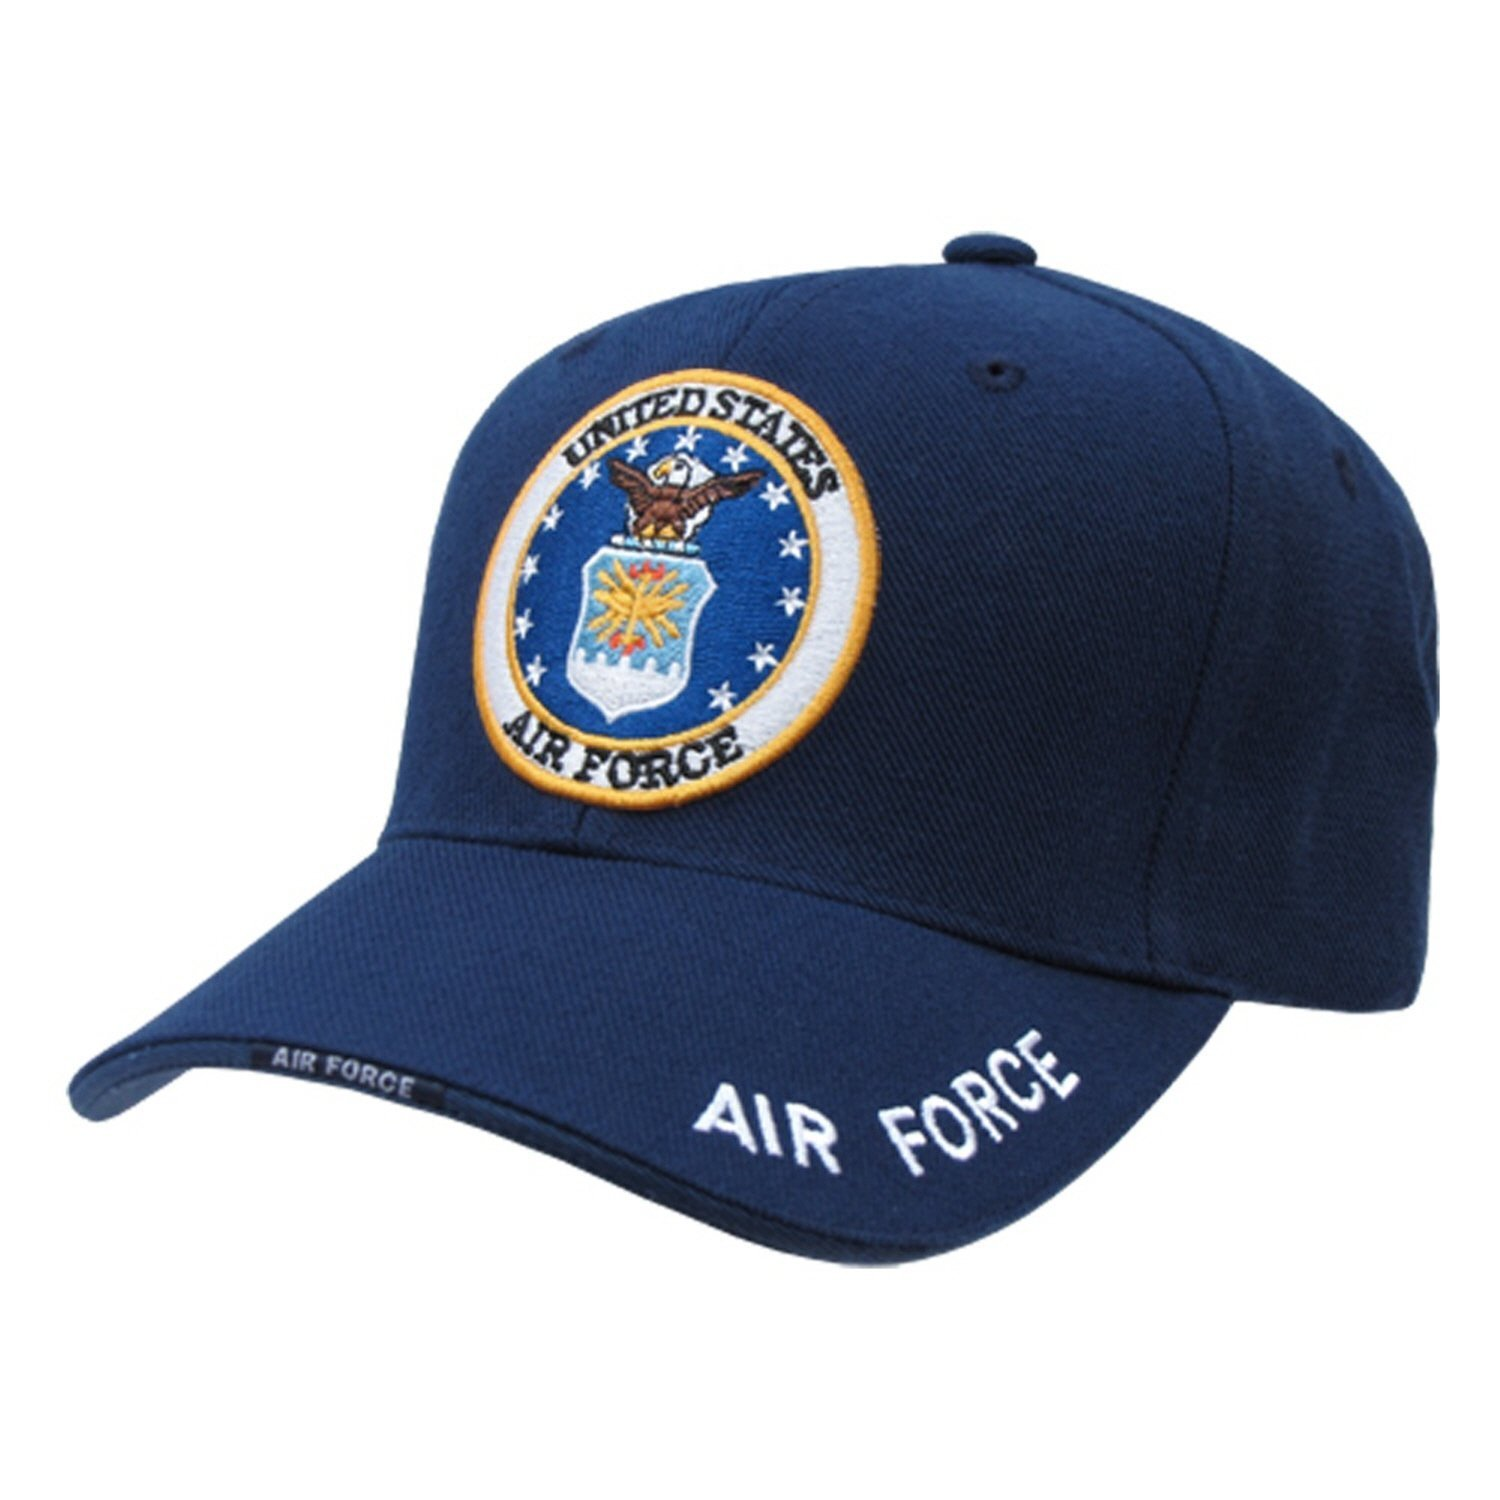 Amazon.com  United States US Air Force official seal design baseball cap   Sports   Outdoors a32d8be98fa